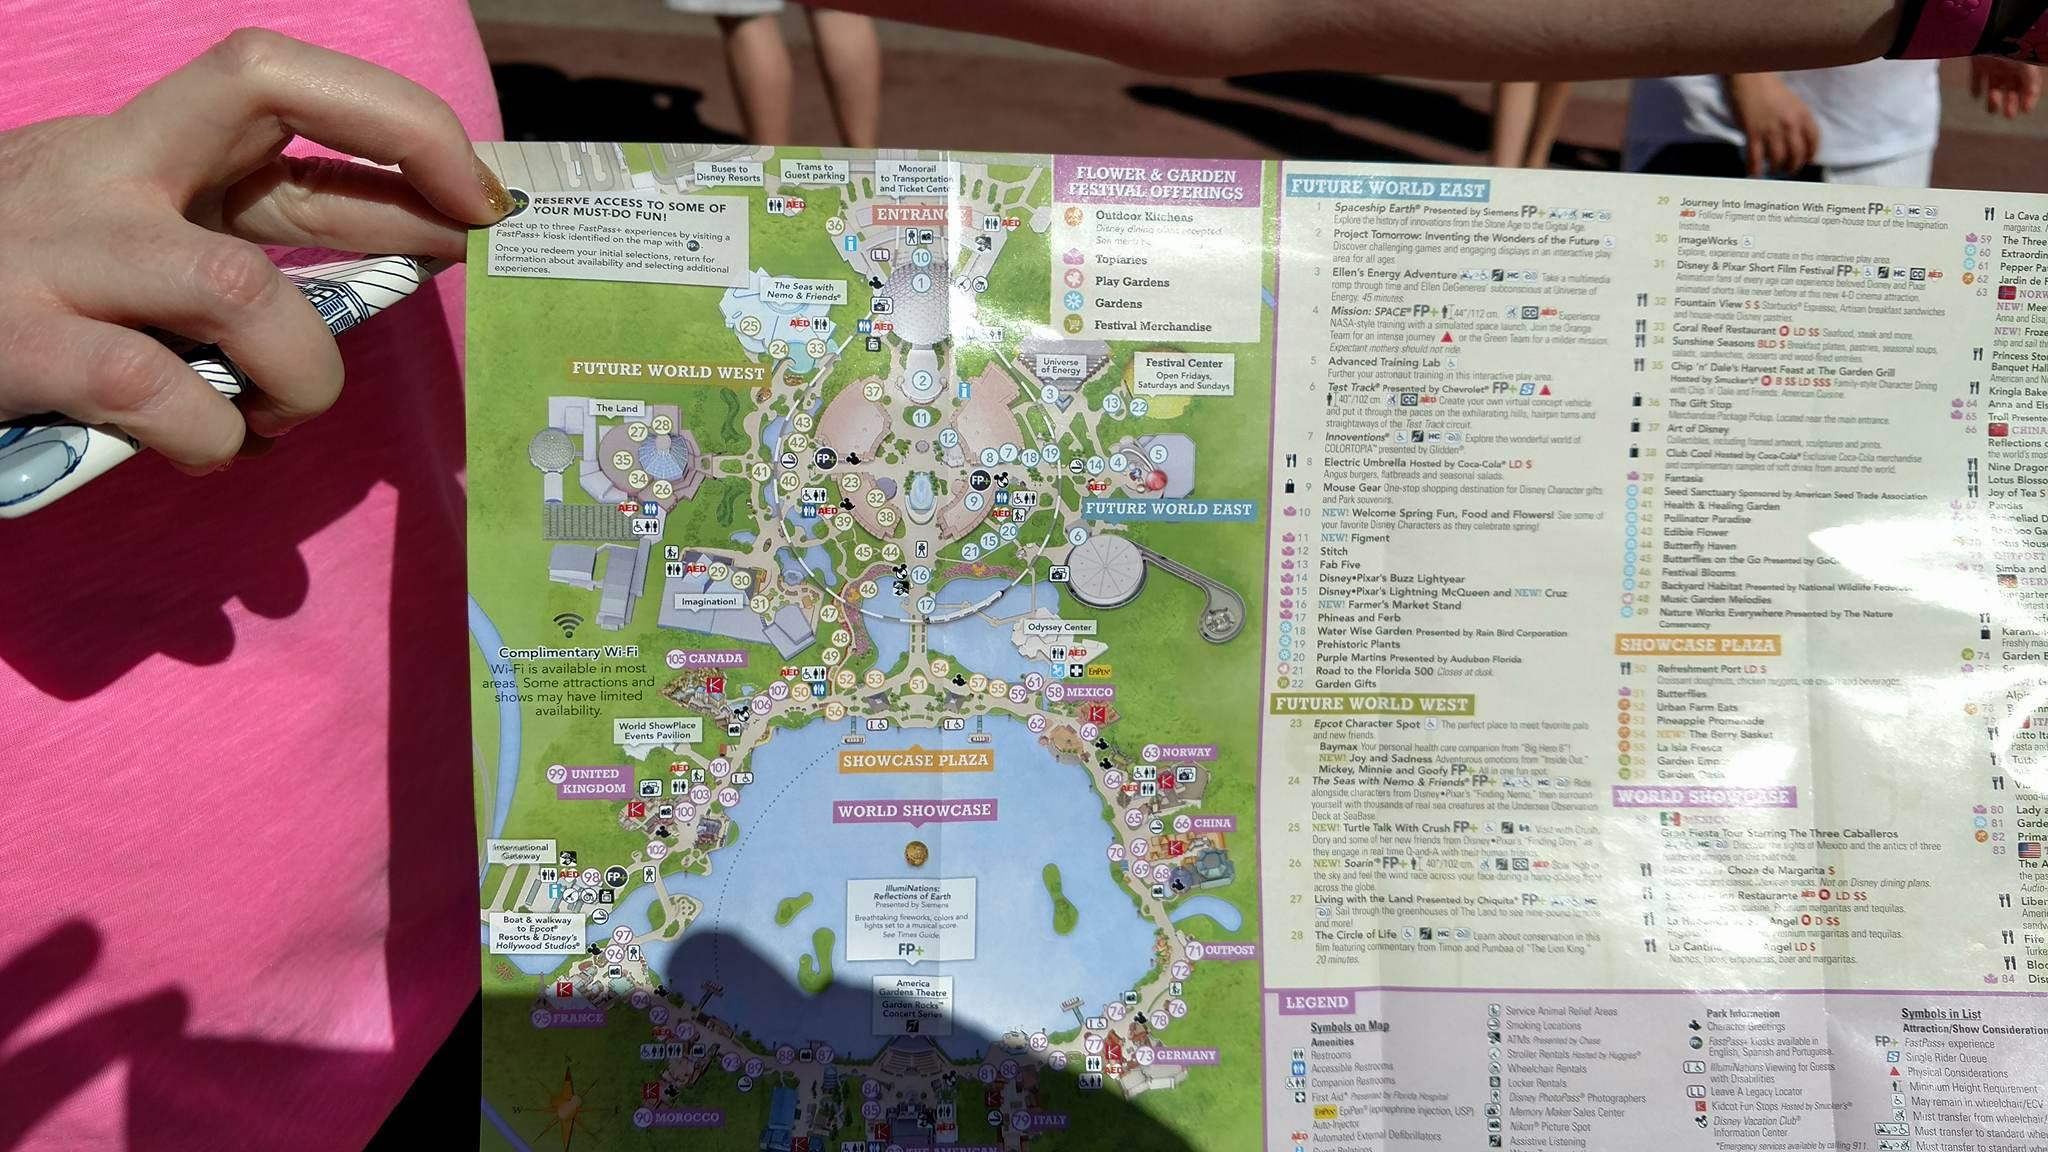 an exclusive peek at the flower and garden festival park maps